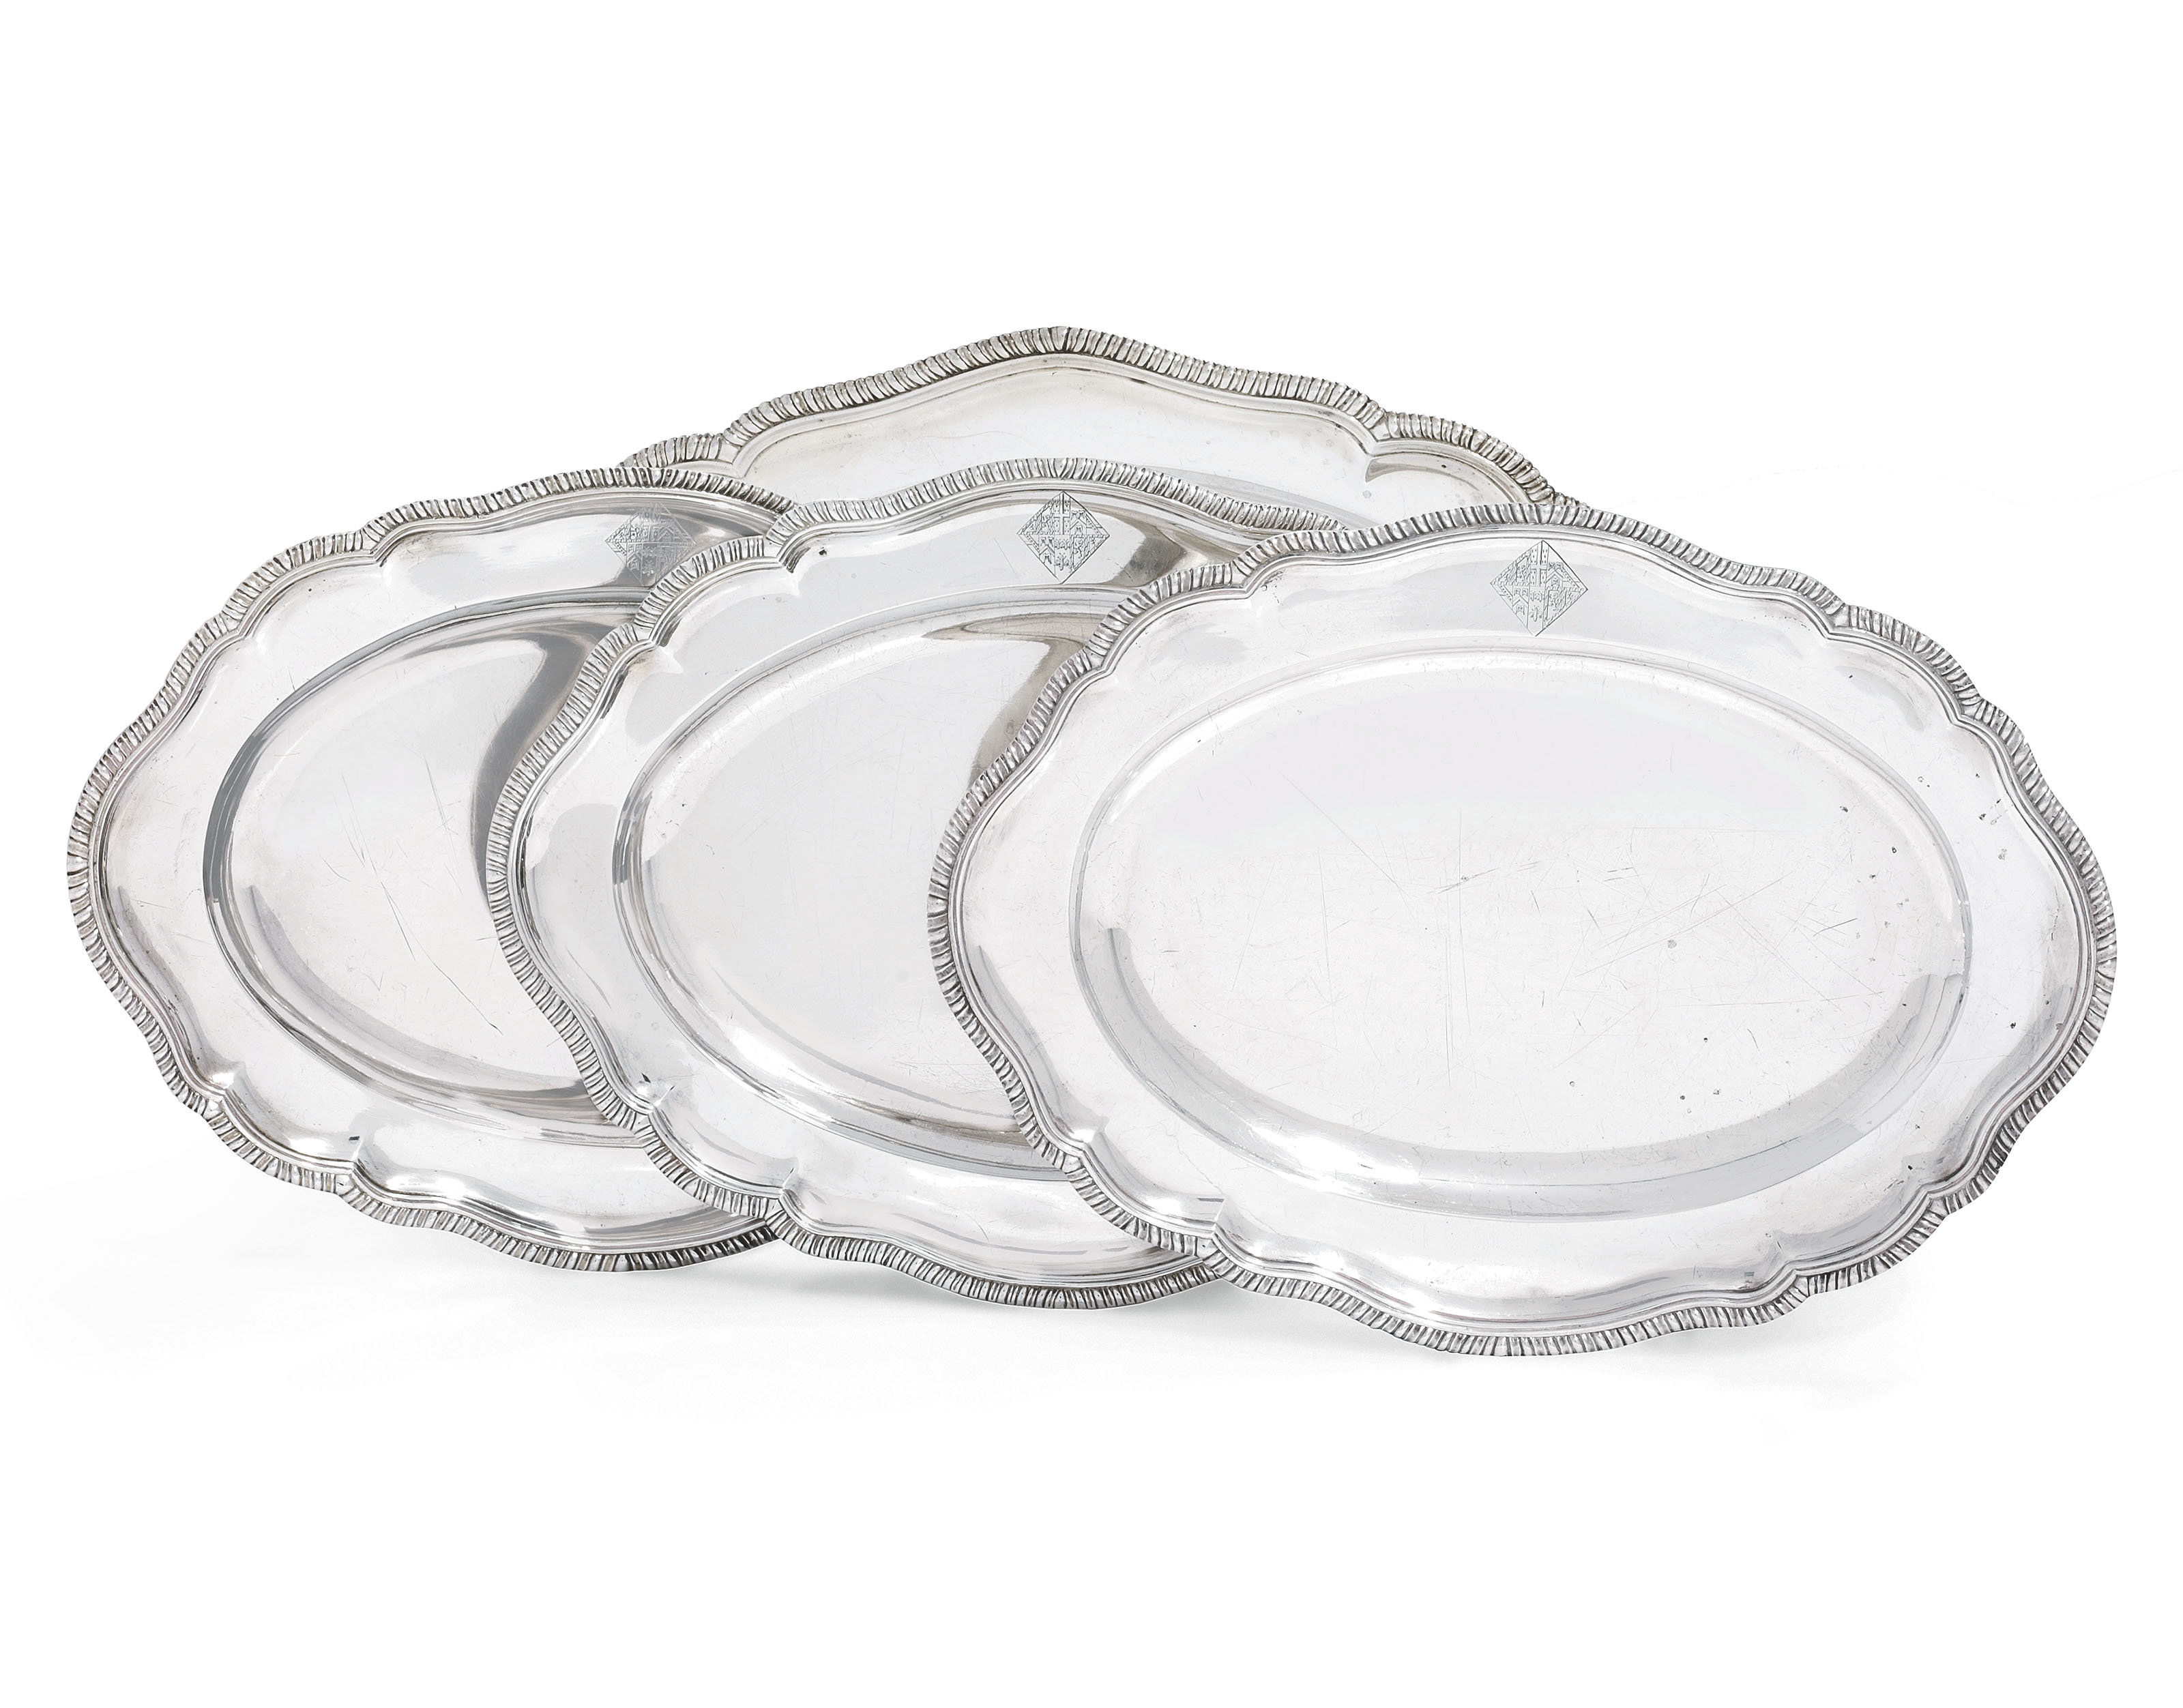 A PAIR OF GEORGE III SILVER MEAT-DISHES, ANOTHER SIMILAR AND A GEORGE II IRISH SILVER MEAT DISH